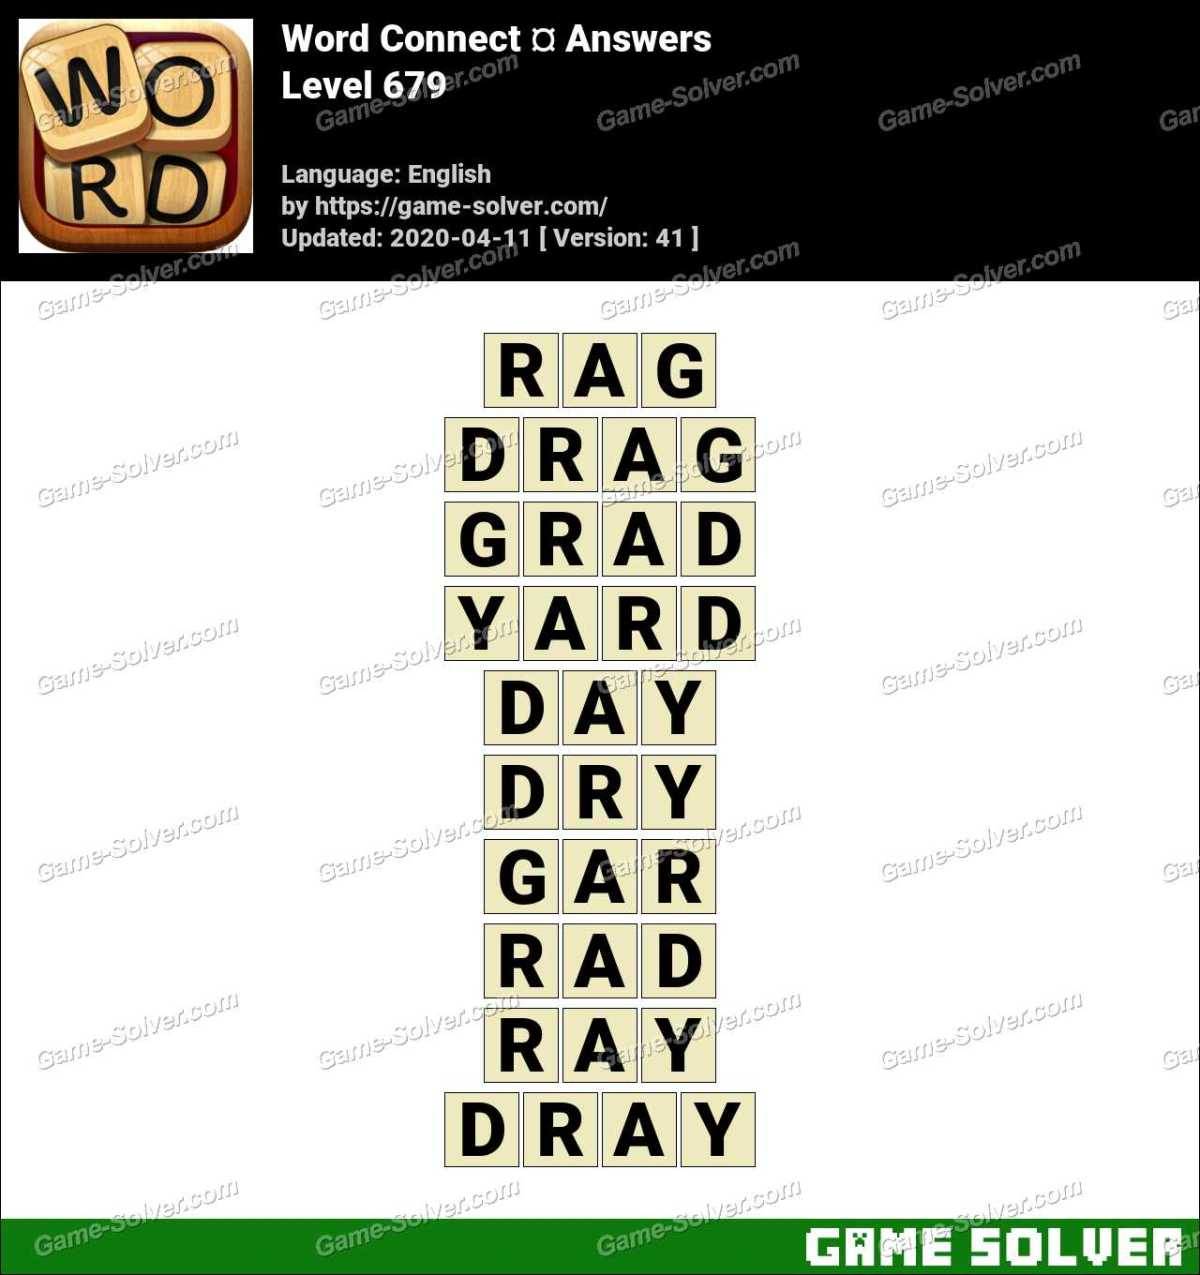 Word Connect Level 679 Answers